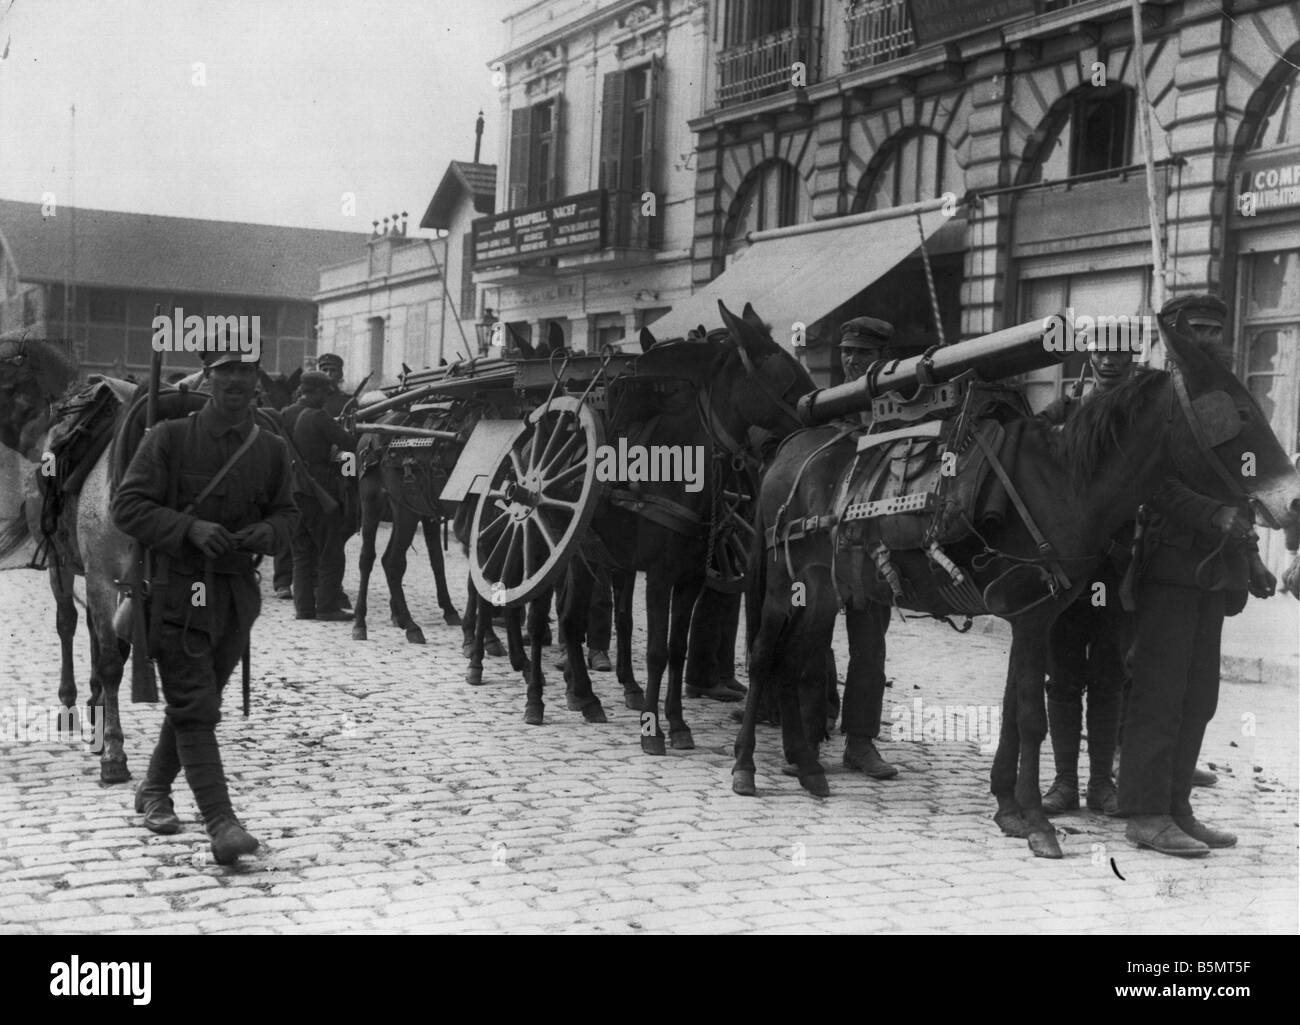 9GR 1915 11 22 A1 Greek artillery Thessaloniki 1915 World War 1 Greece Greek artillery in the port of Thessaloniki - Stock Image